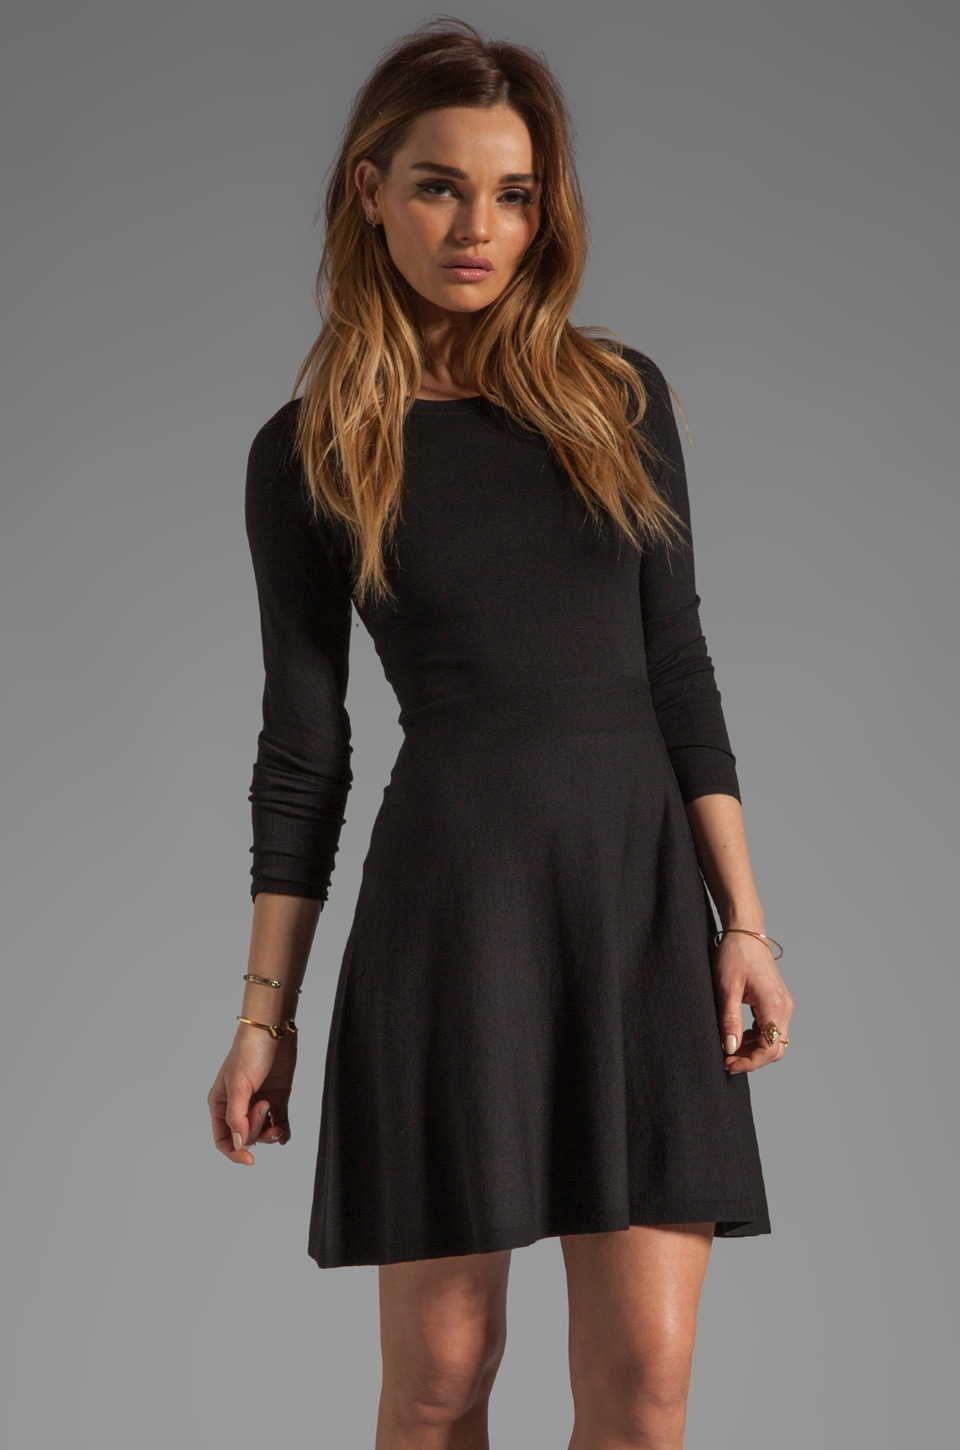 Theory Gleam Annarey Silk/Cotton Blend Dress in Black